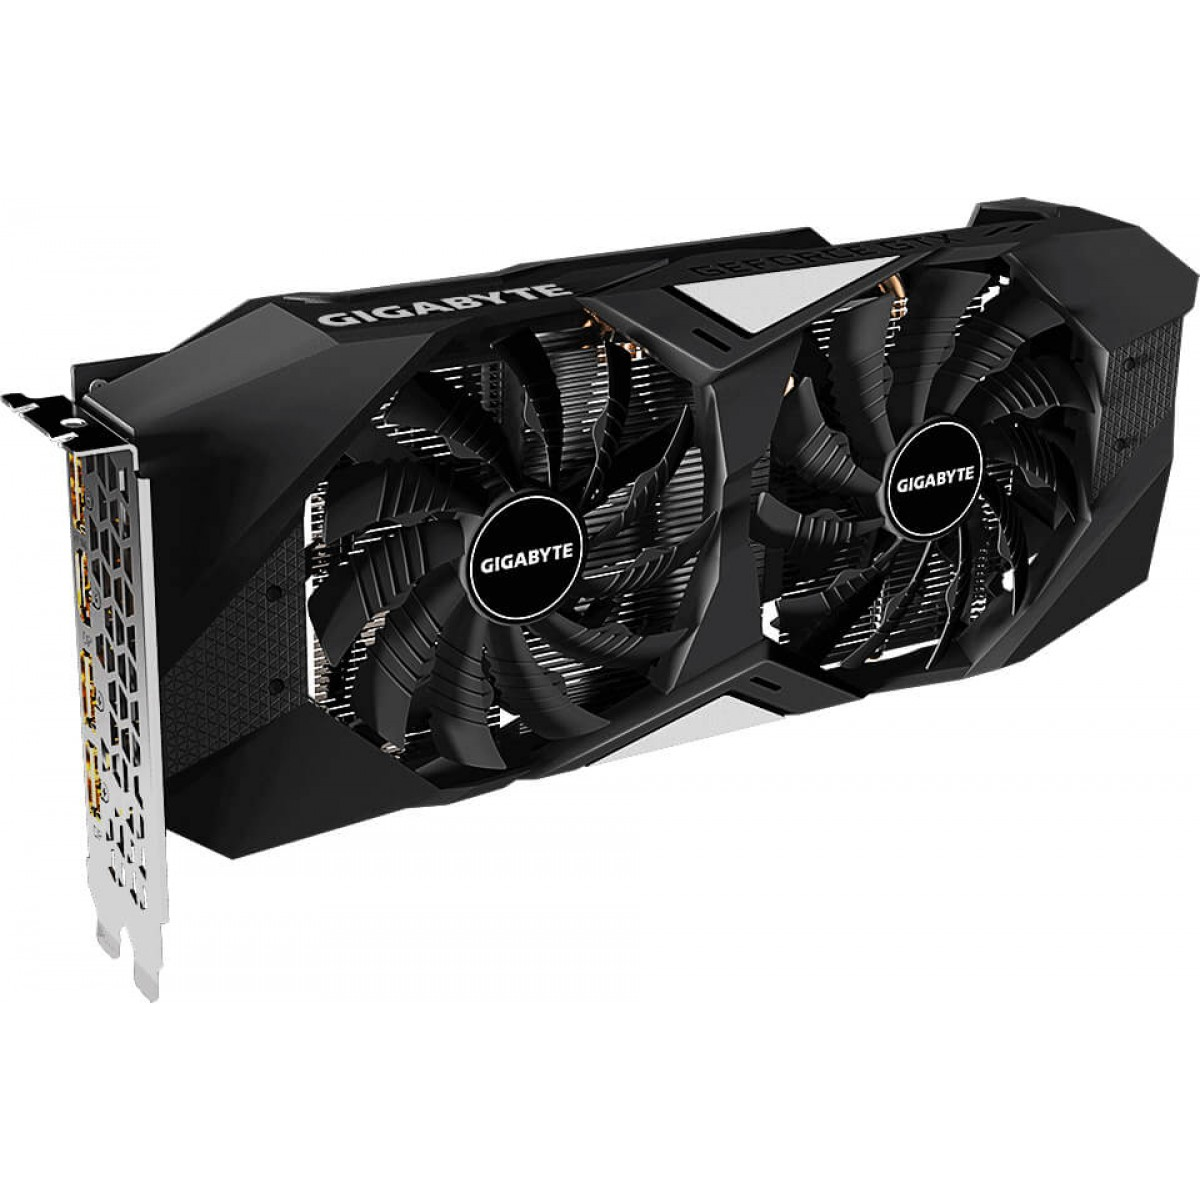 Placa de Vídeo Gigabyte, GeForce, RTX 2060 Super Windforce OC, Dual, 8GB, GDDR6, 256Bit, GV-N206SWF2OC-8GD